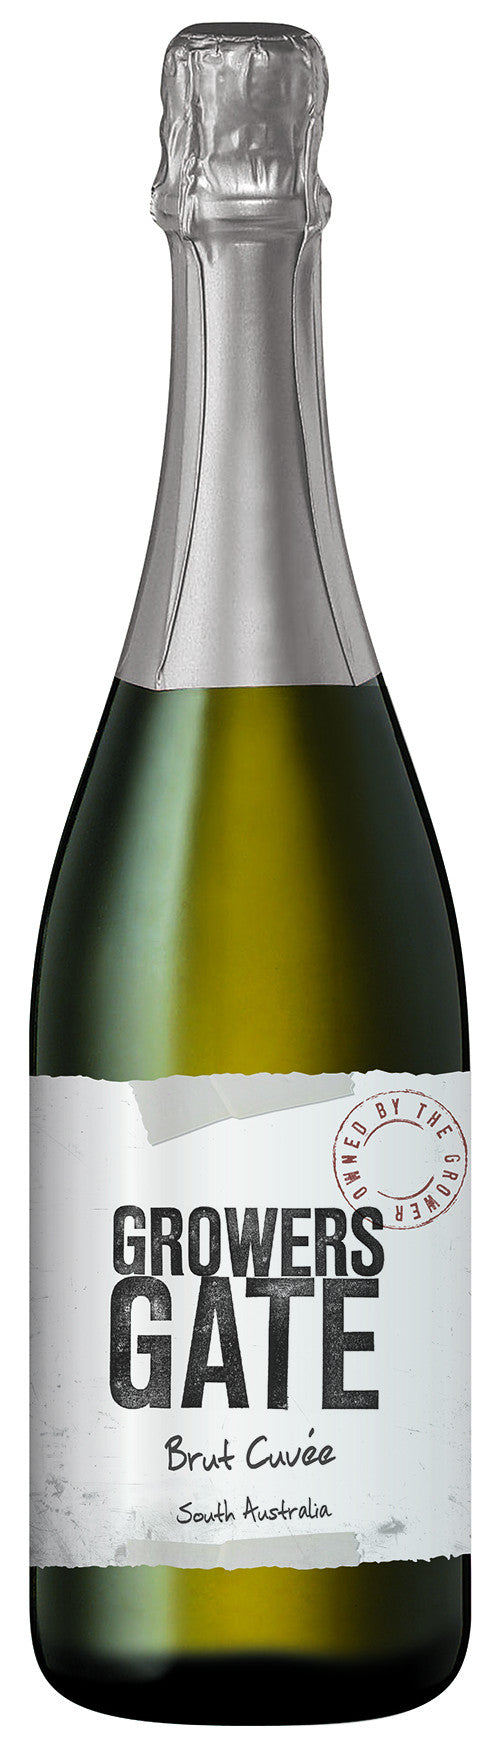 Grower's Gate Brut Cuvee NV - Network Wines